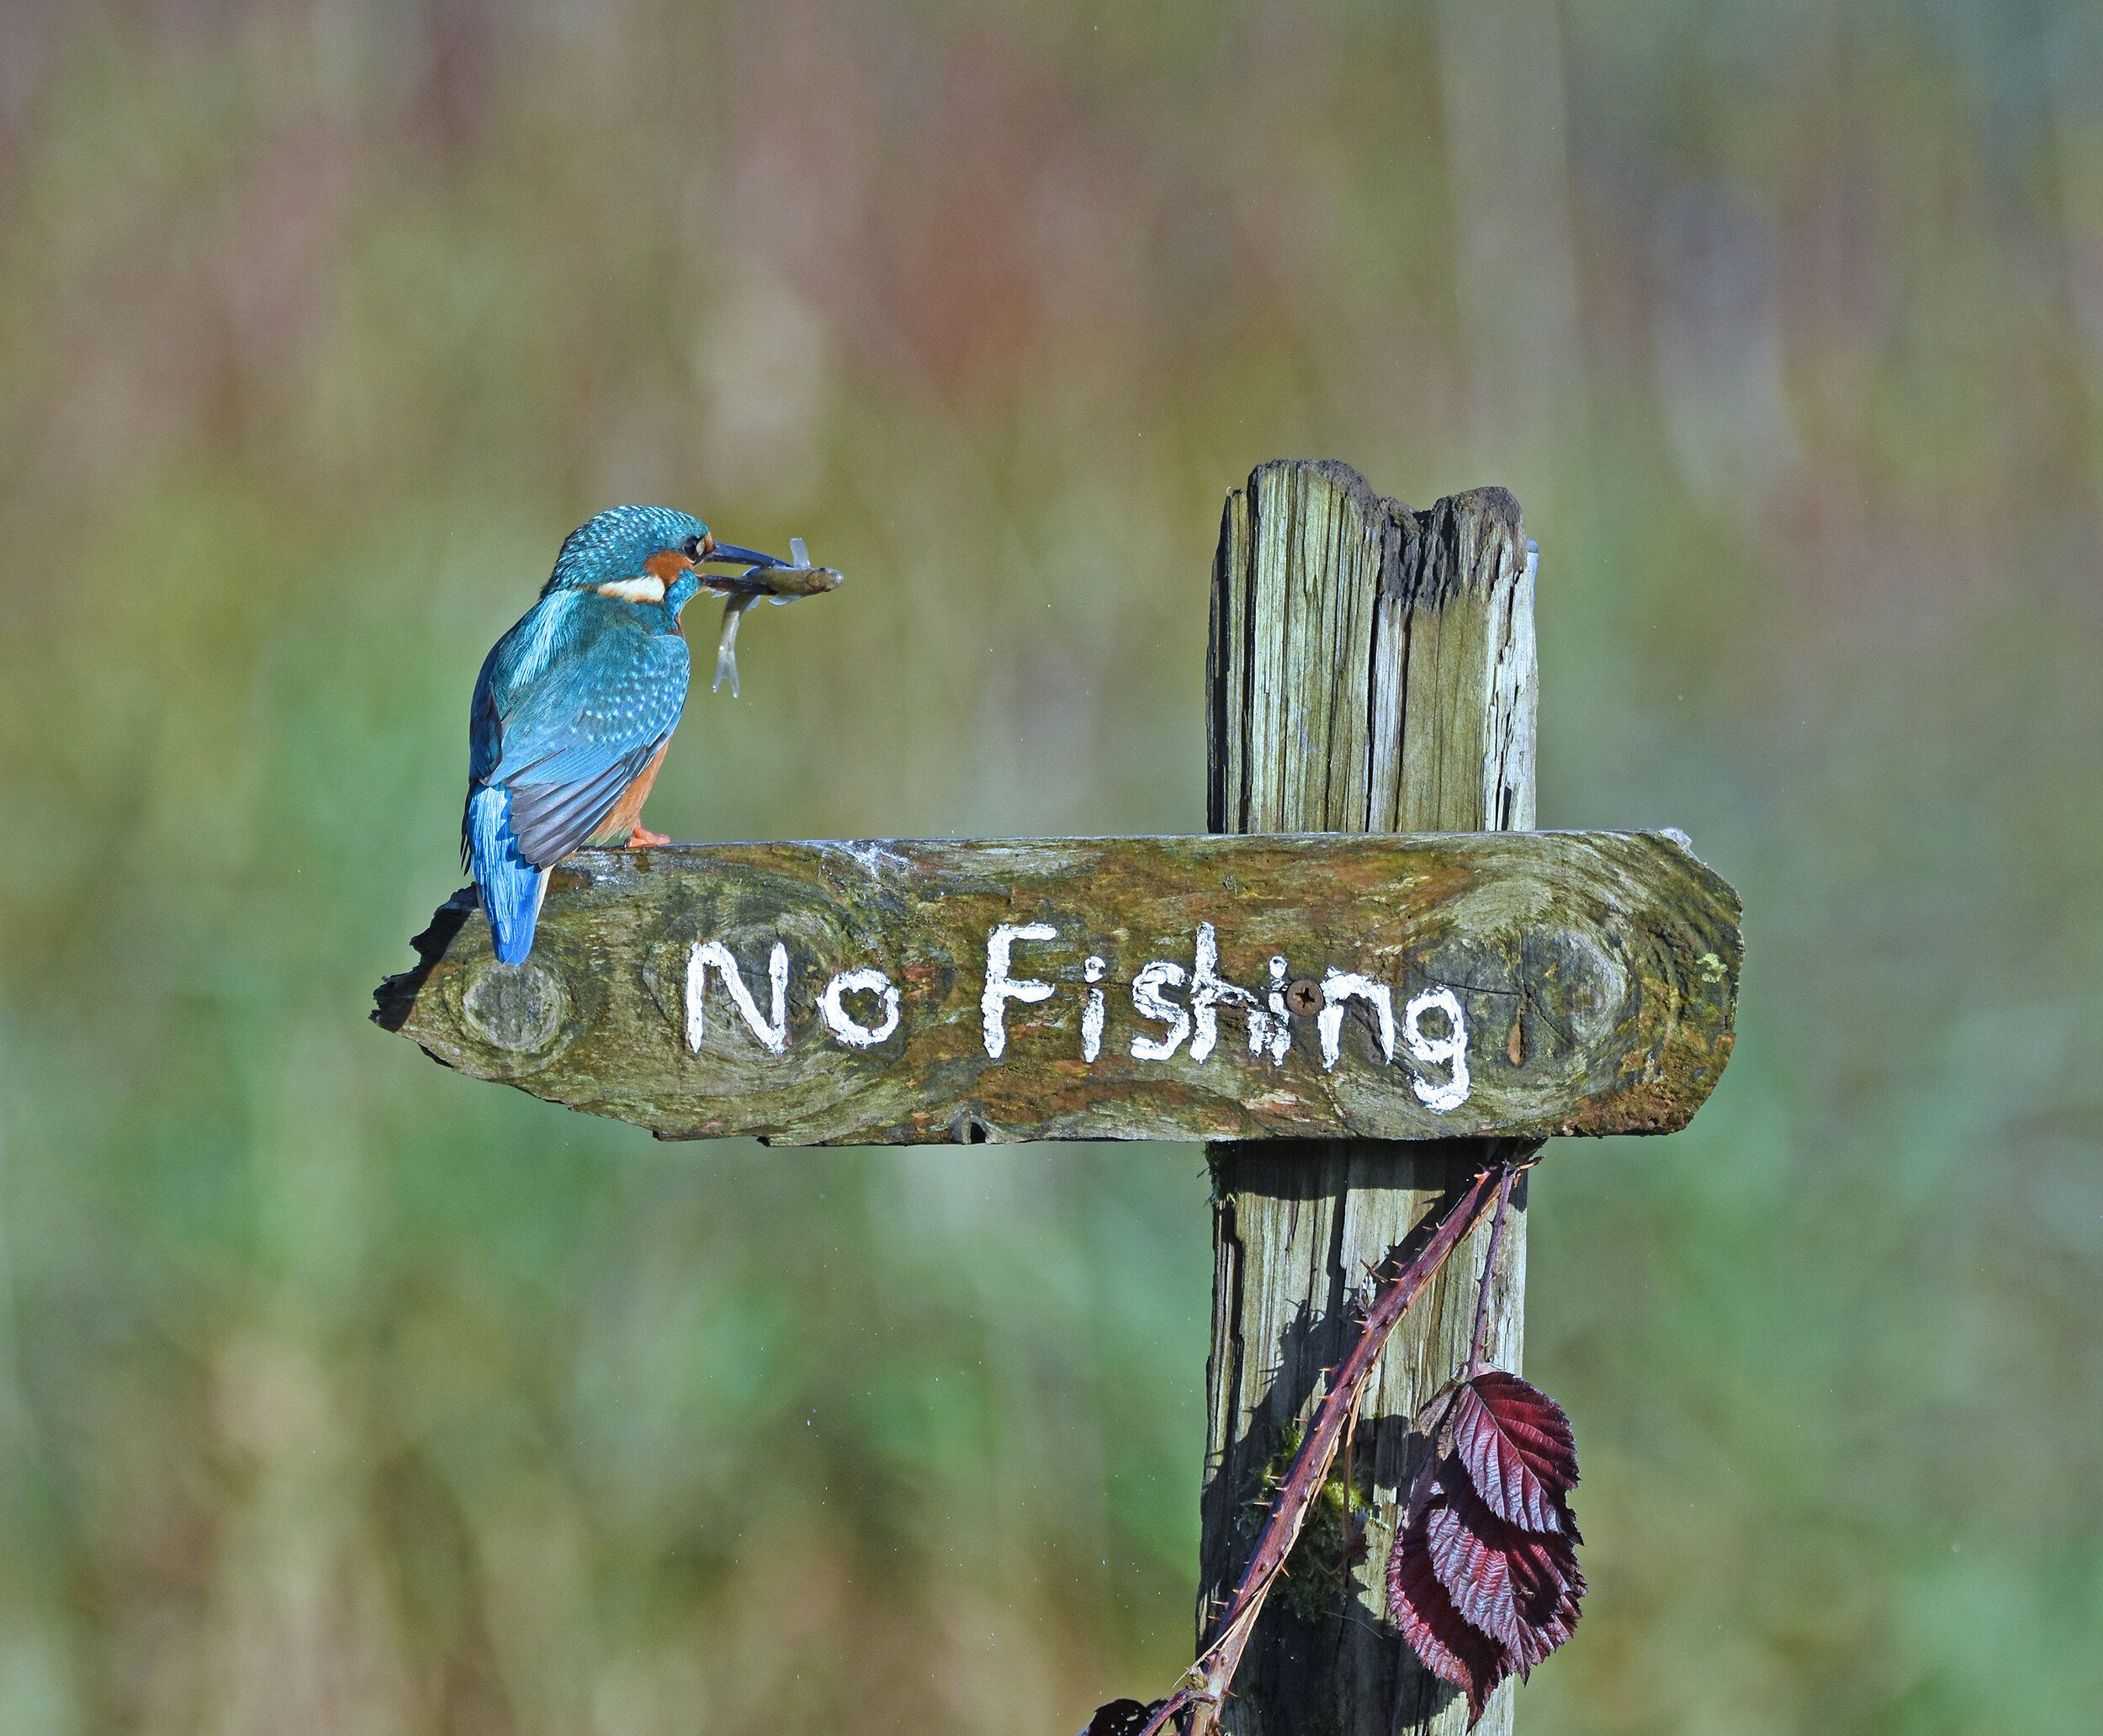 """It's a Mocking Bird"" is an image of a kingfisher that was taken in Kirkcudbright, United Kingdom."